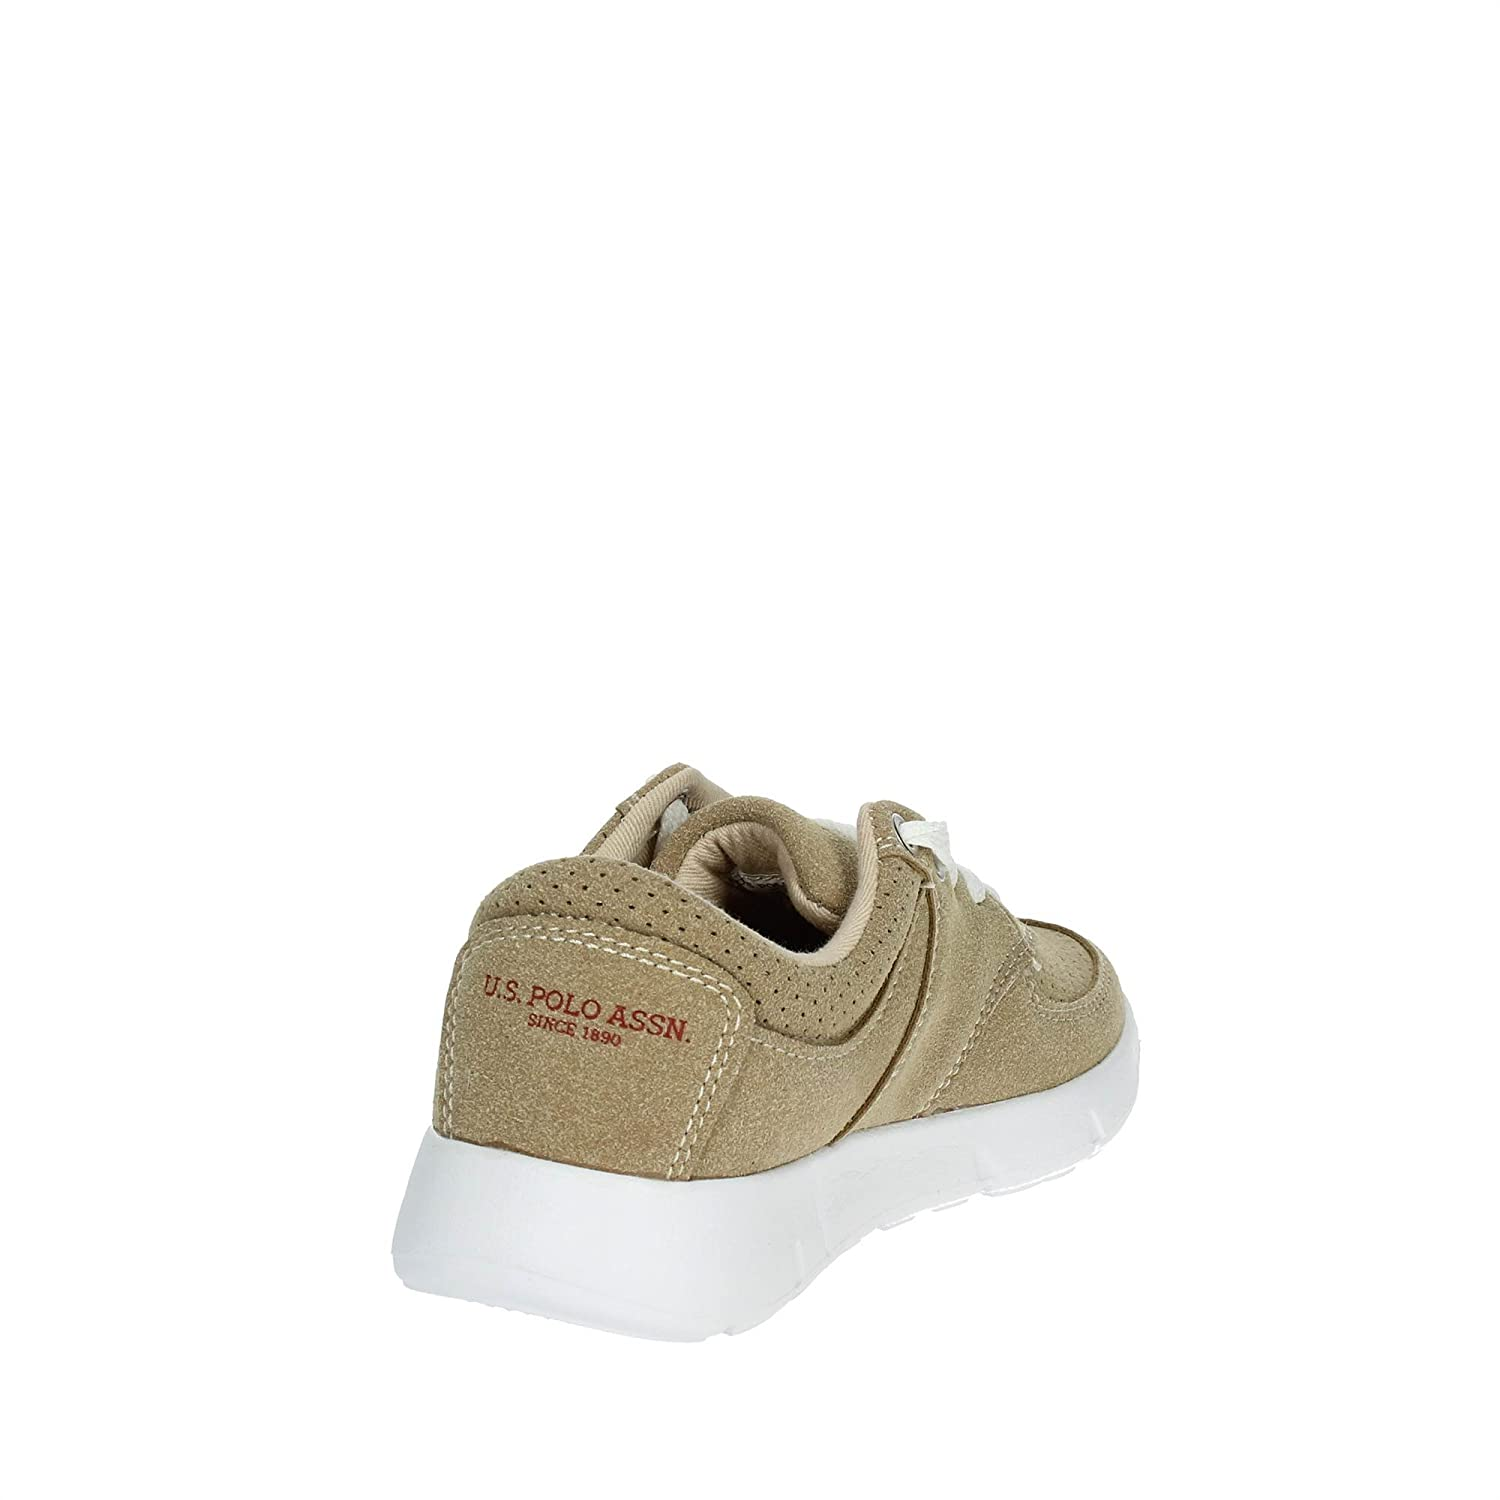 Polo Bassa U Amazon FERDY4032S8H1 s Assn it Sneakers Bambino Uqw1pq